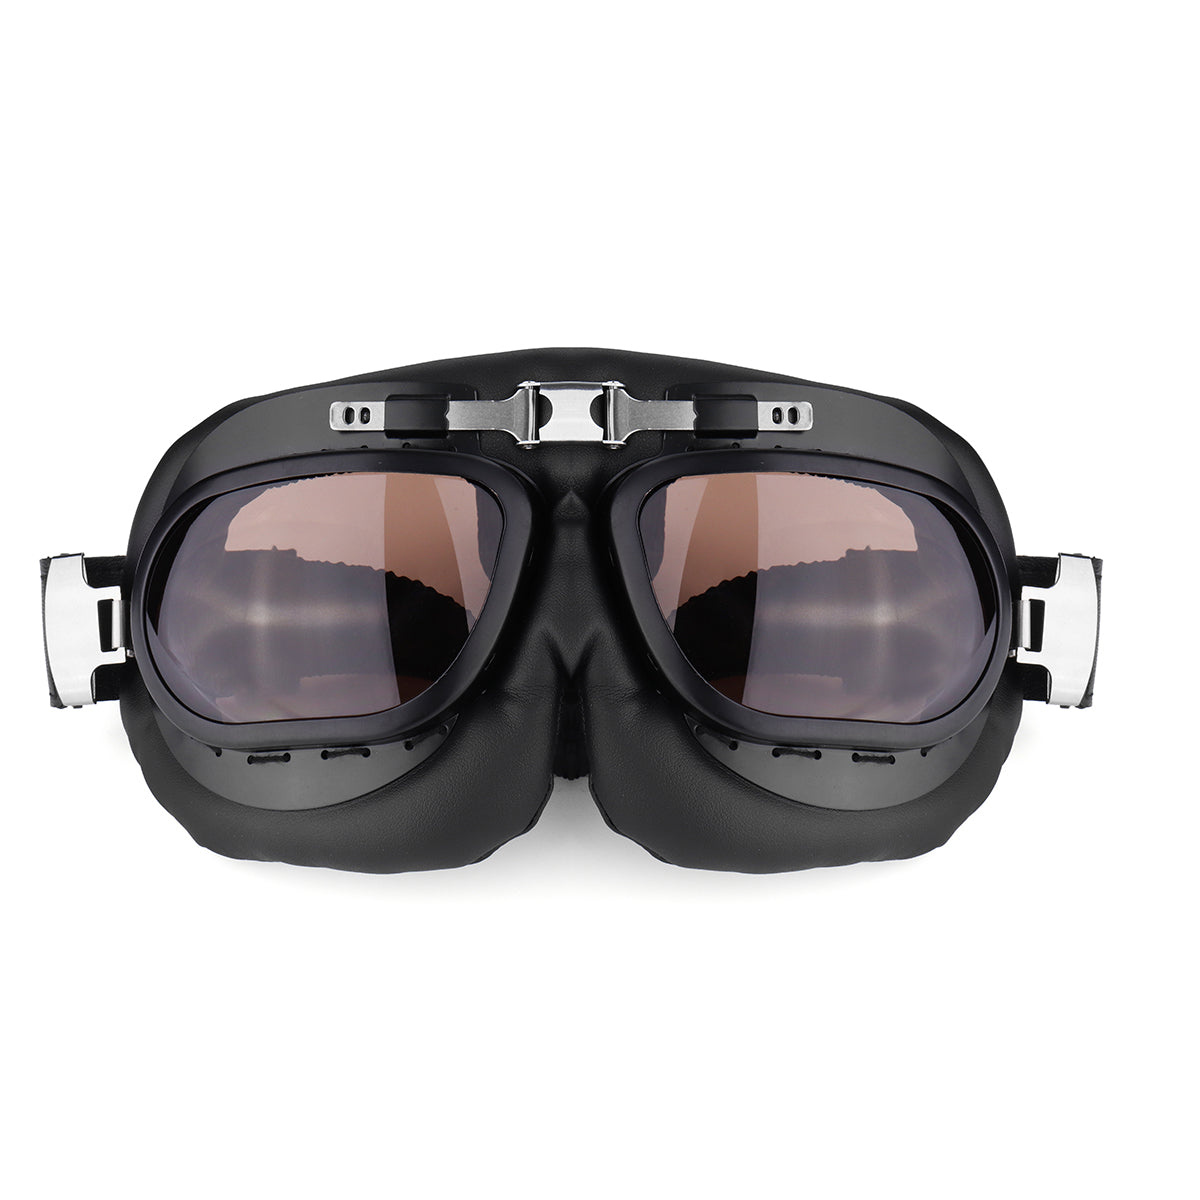 87c6400635 Motorcycle Goggles Glasses Vintage Classic Goggles Retro Pilot Cruiser  Steampunk UV Protecti